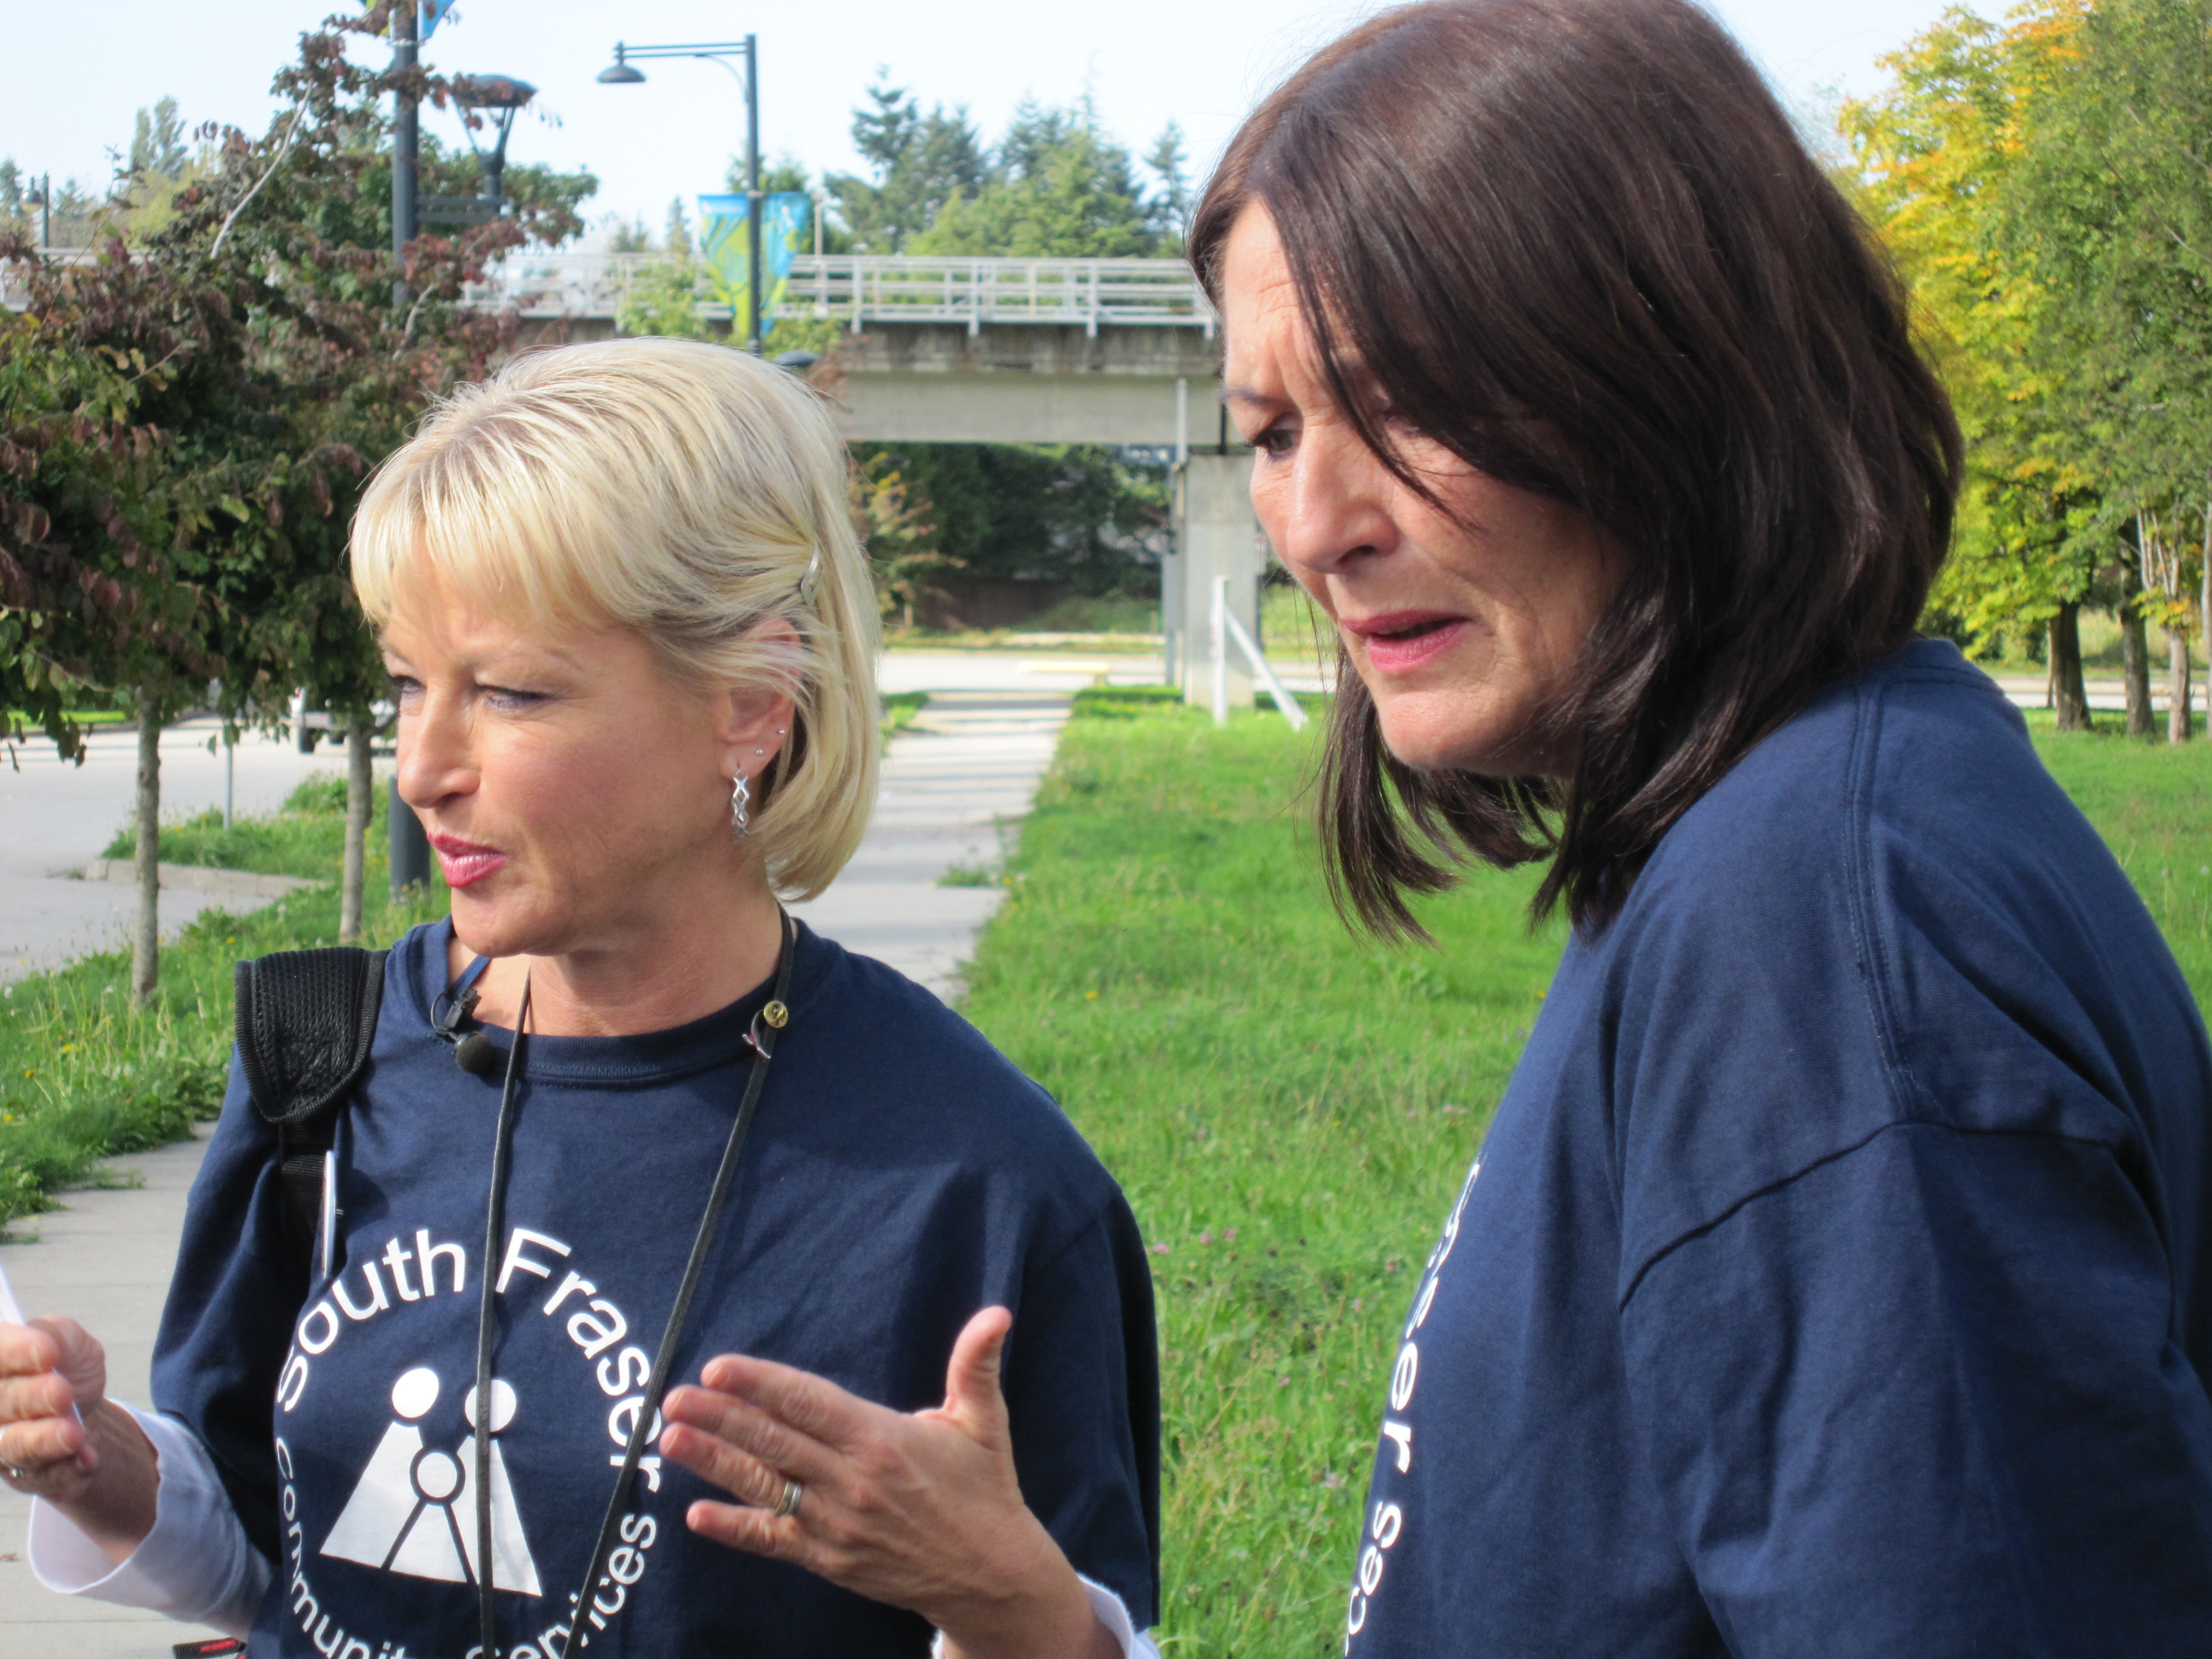 Outreach Workers Answer Media Questions at Launch of Week